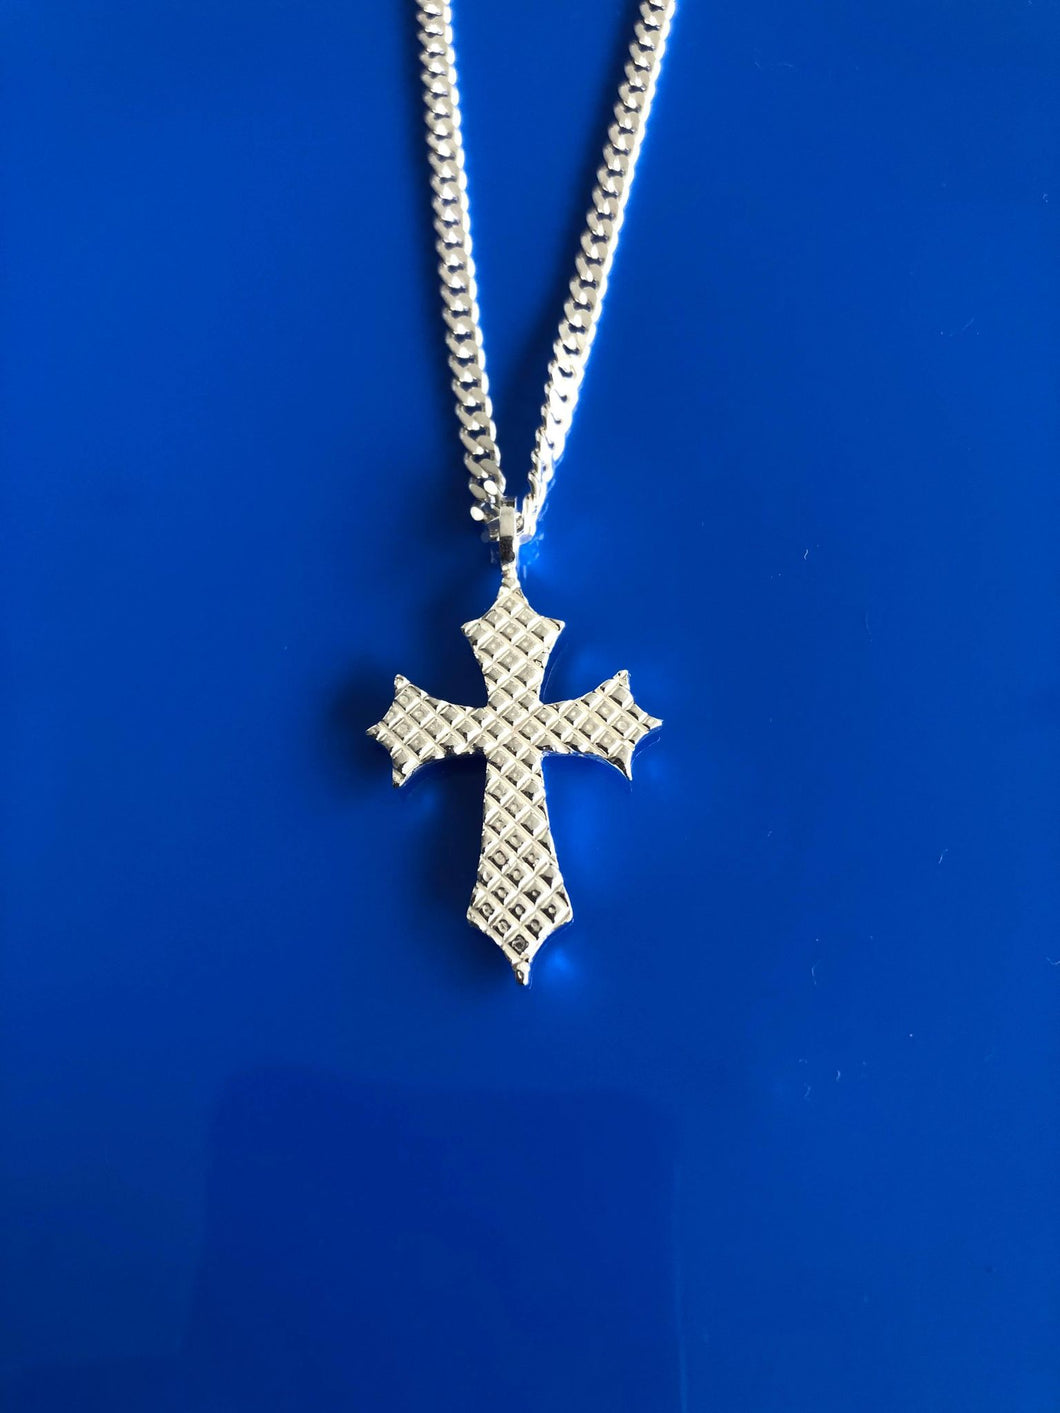 Lil Cross Necklace